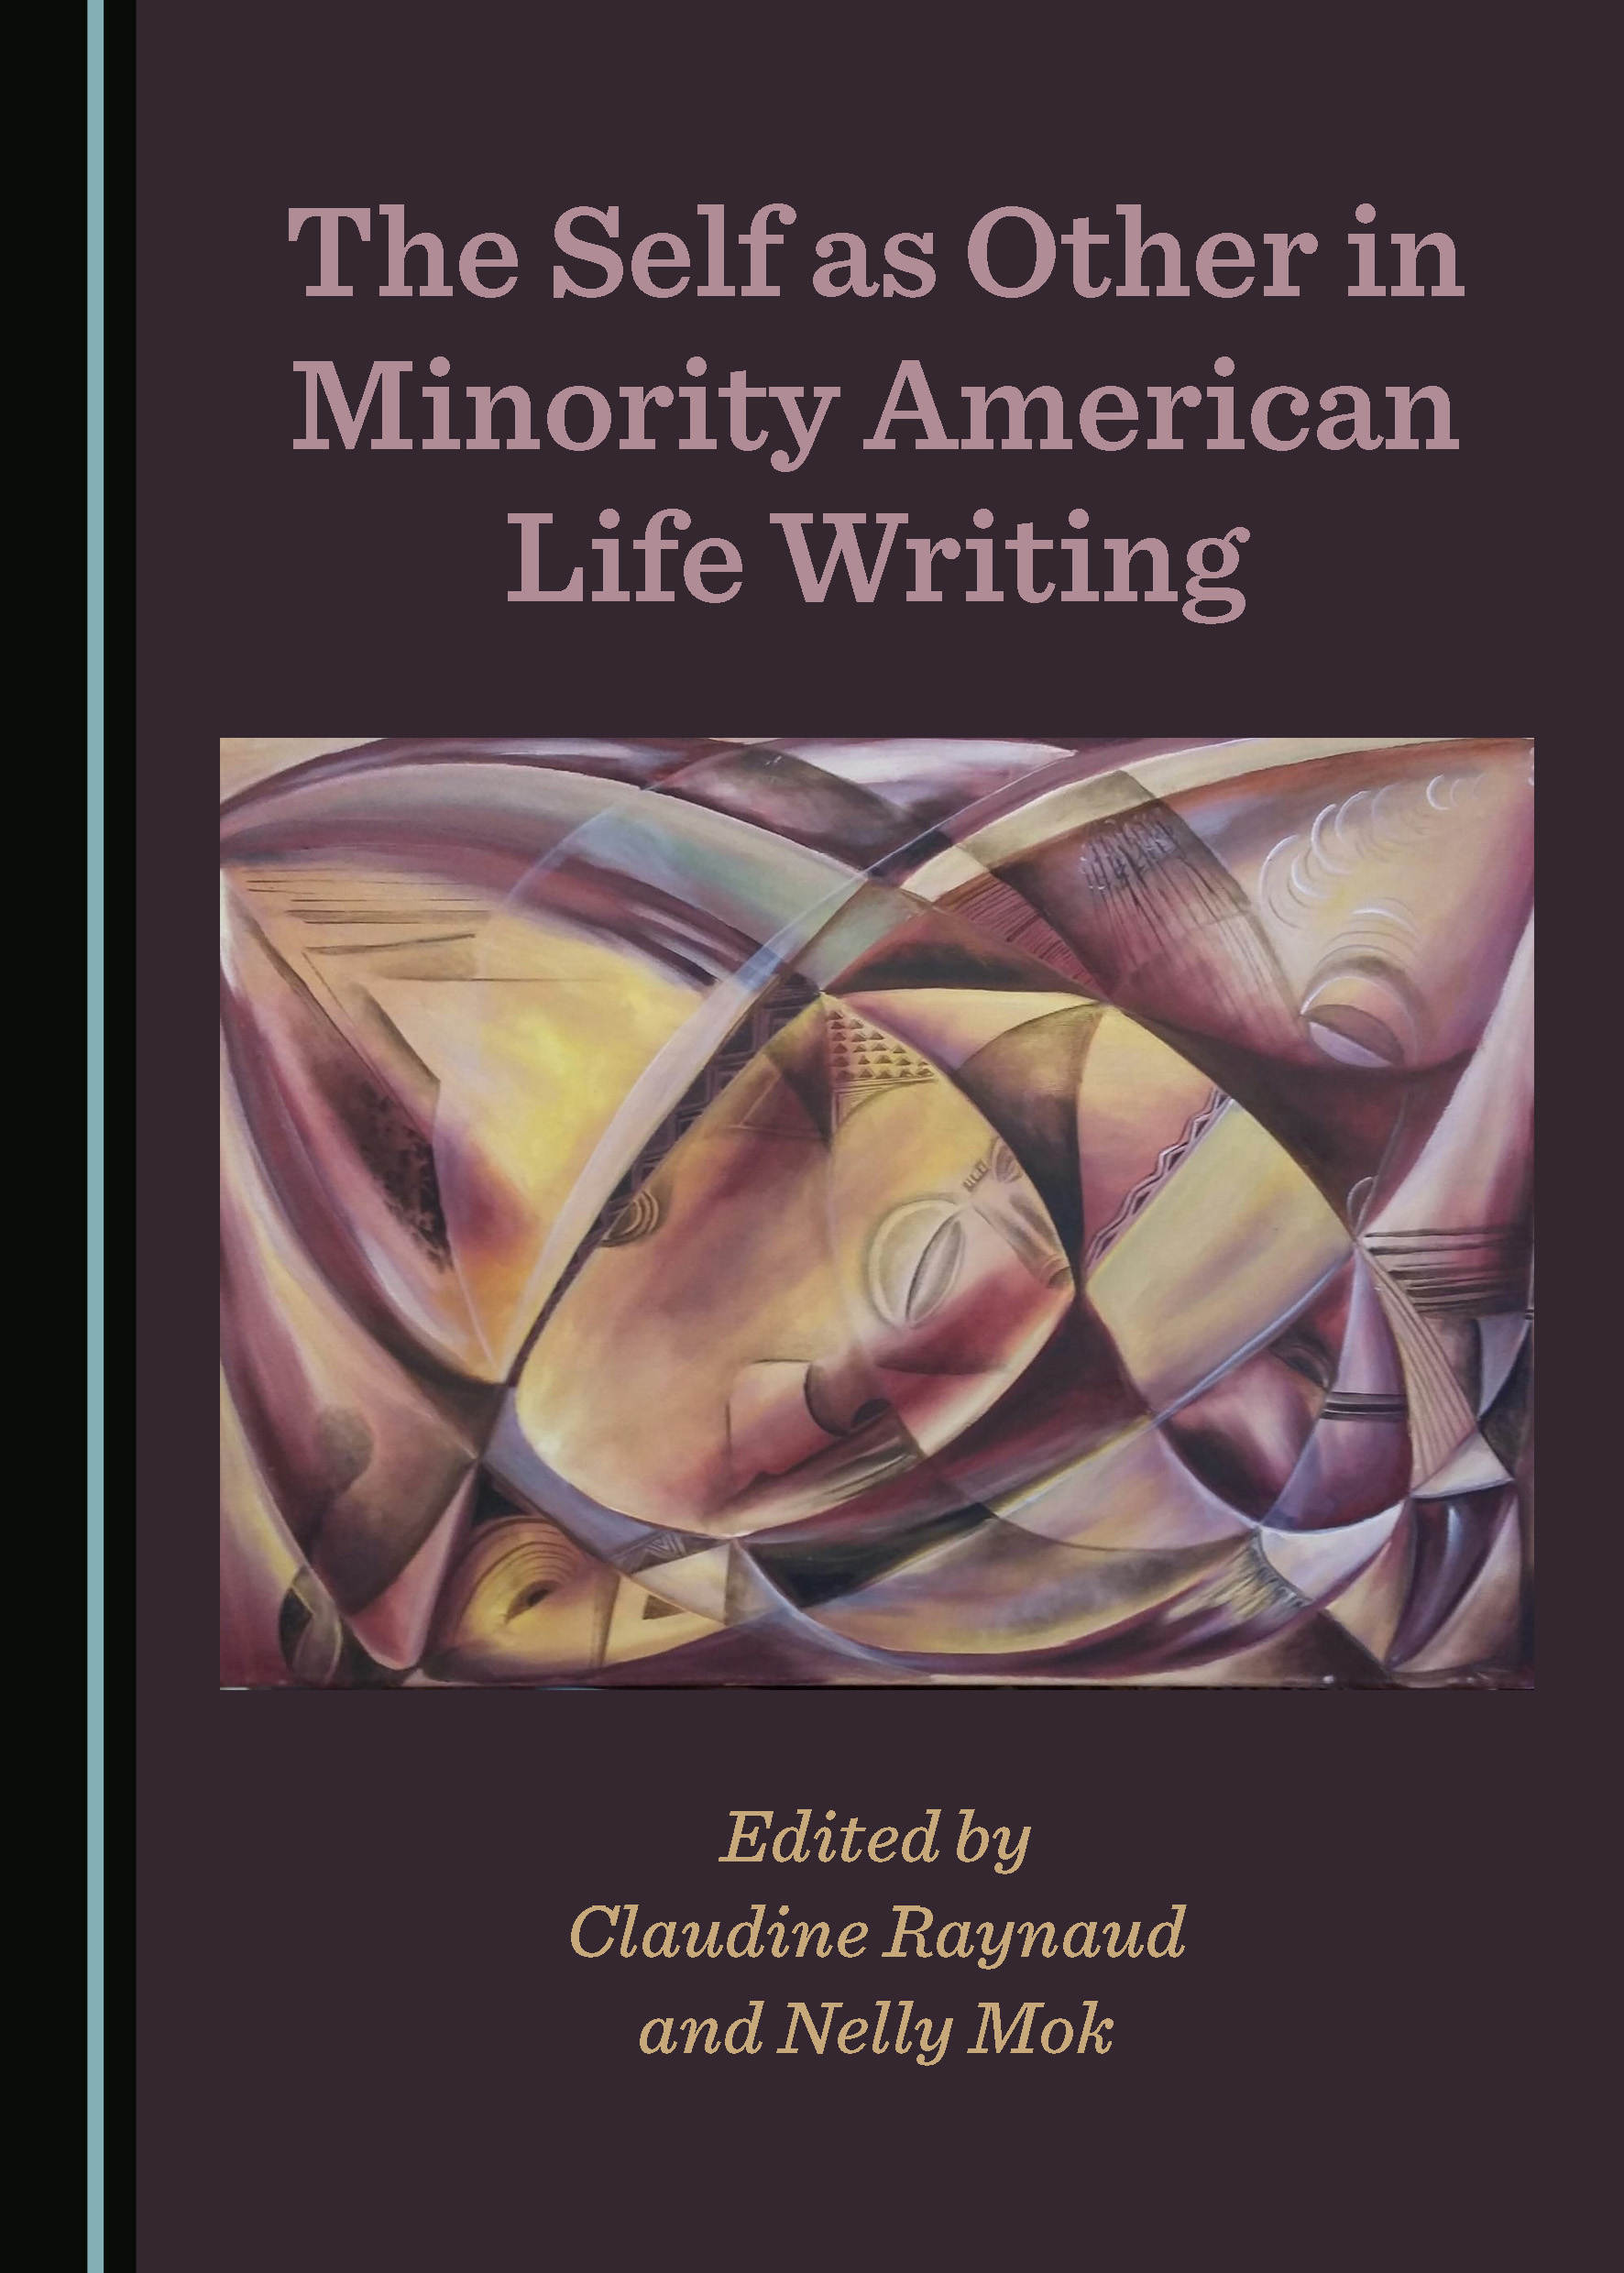 The Self as Other in Minority American Life Writing